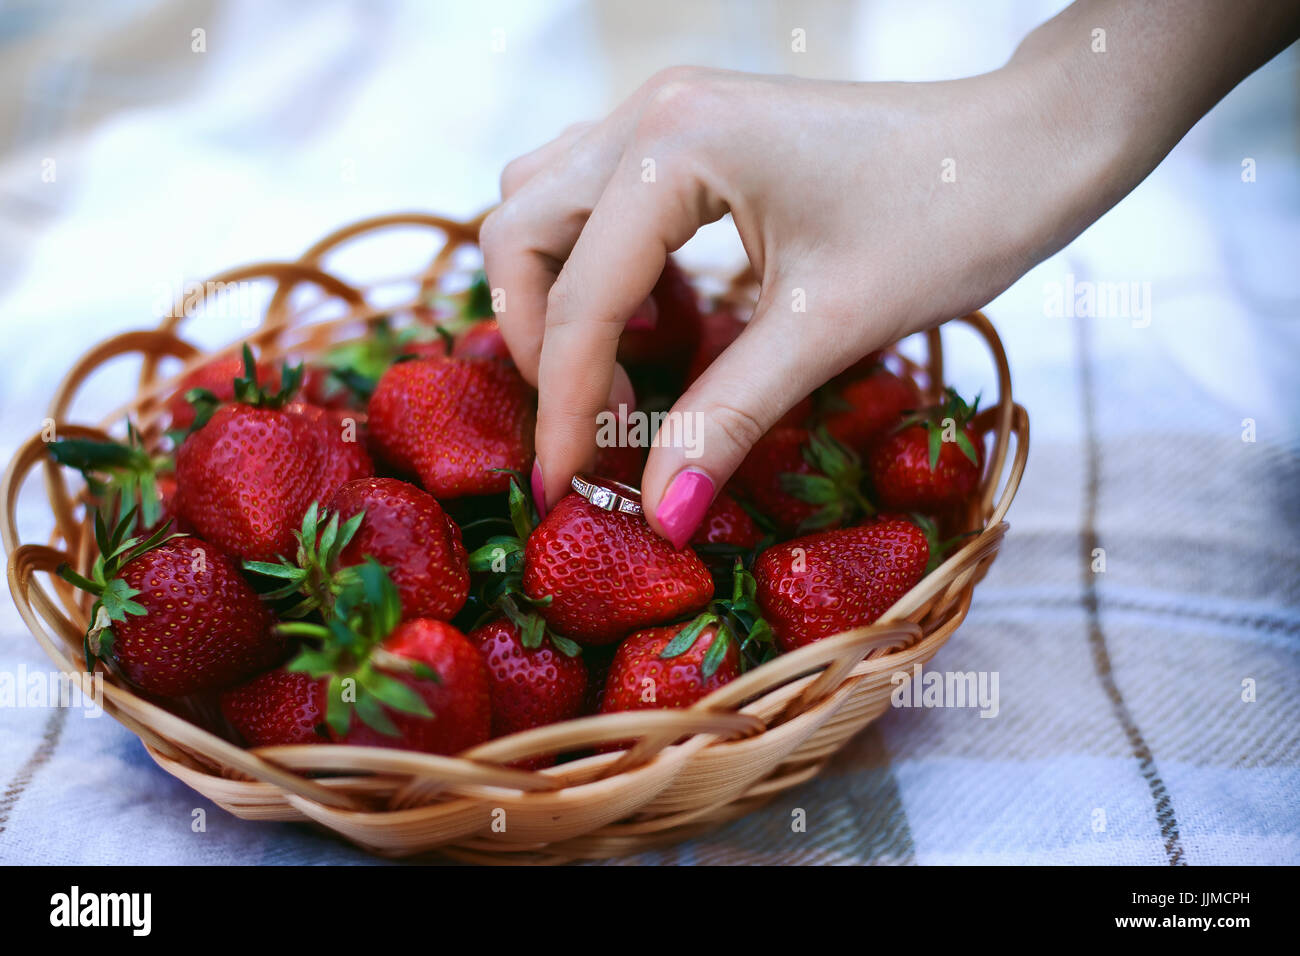 The girl's hand holds an engagement ring near a wicker basket with strawberries. Still life. concept of Betrothal, - Stock Image